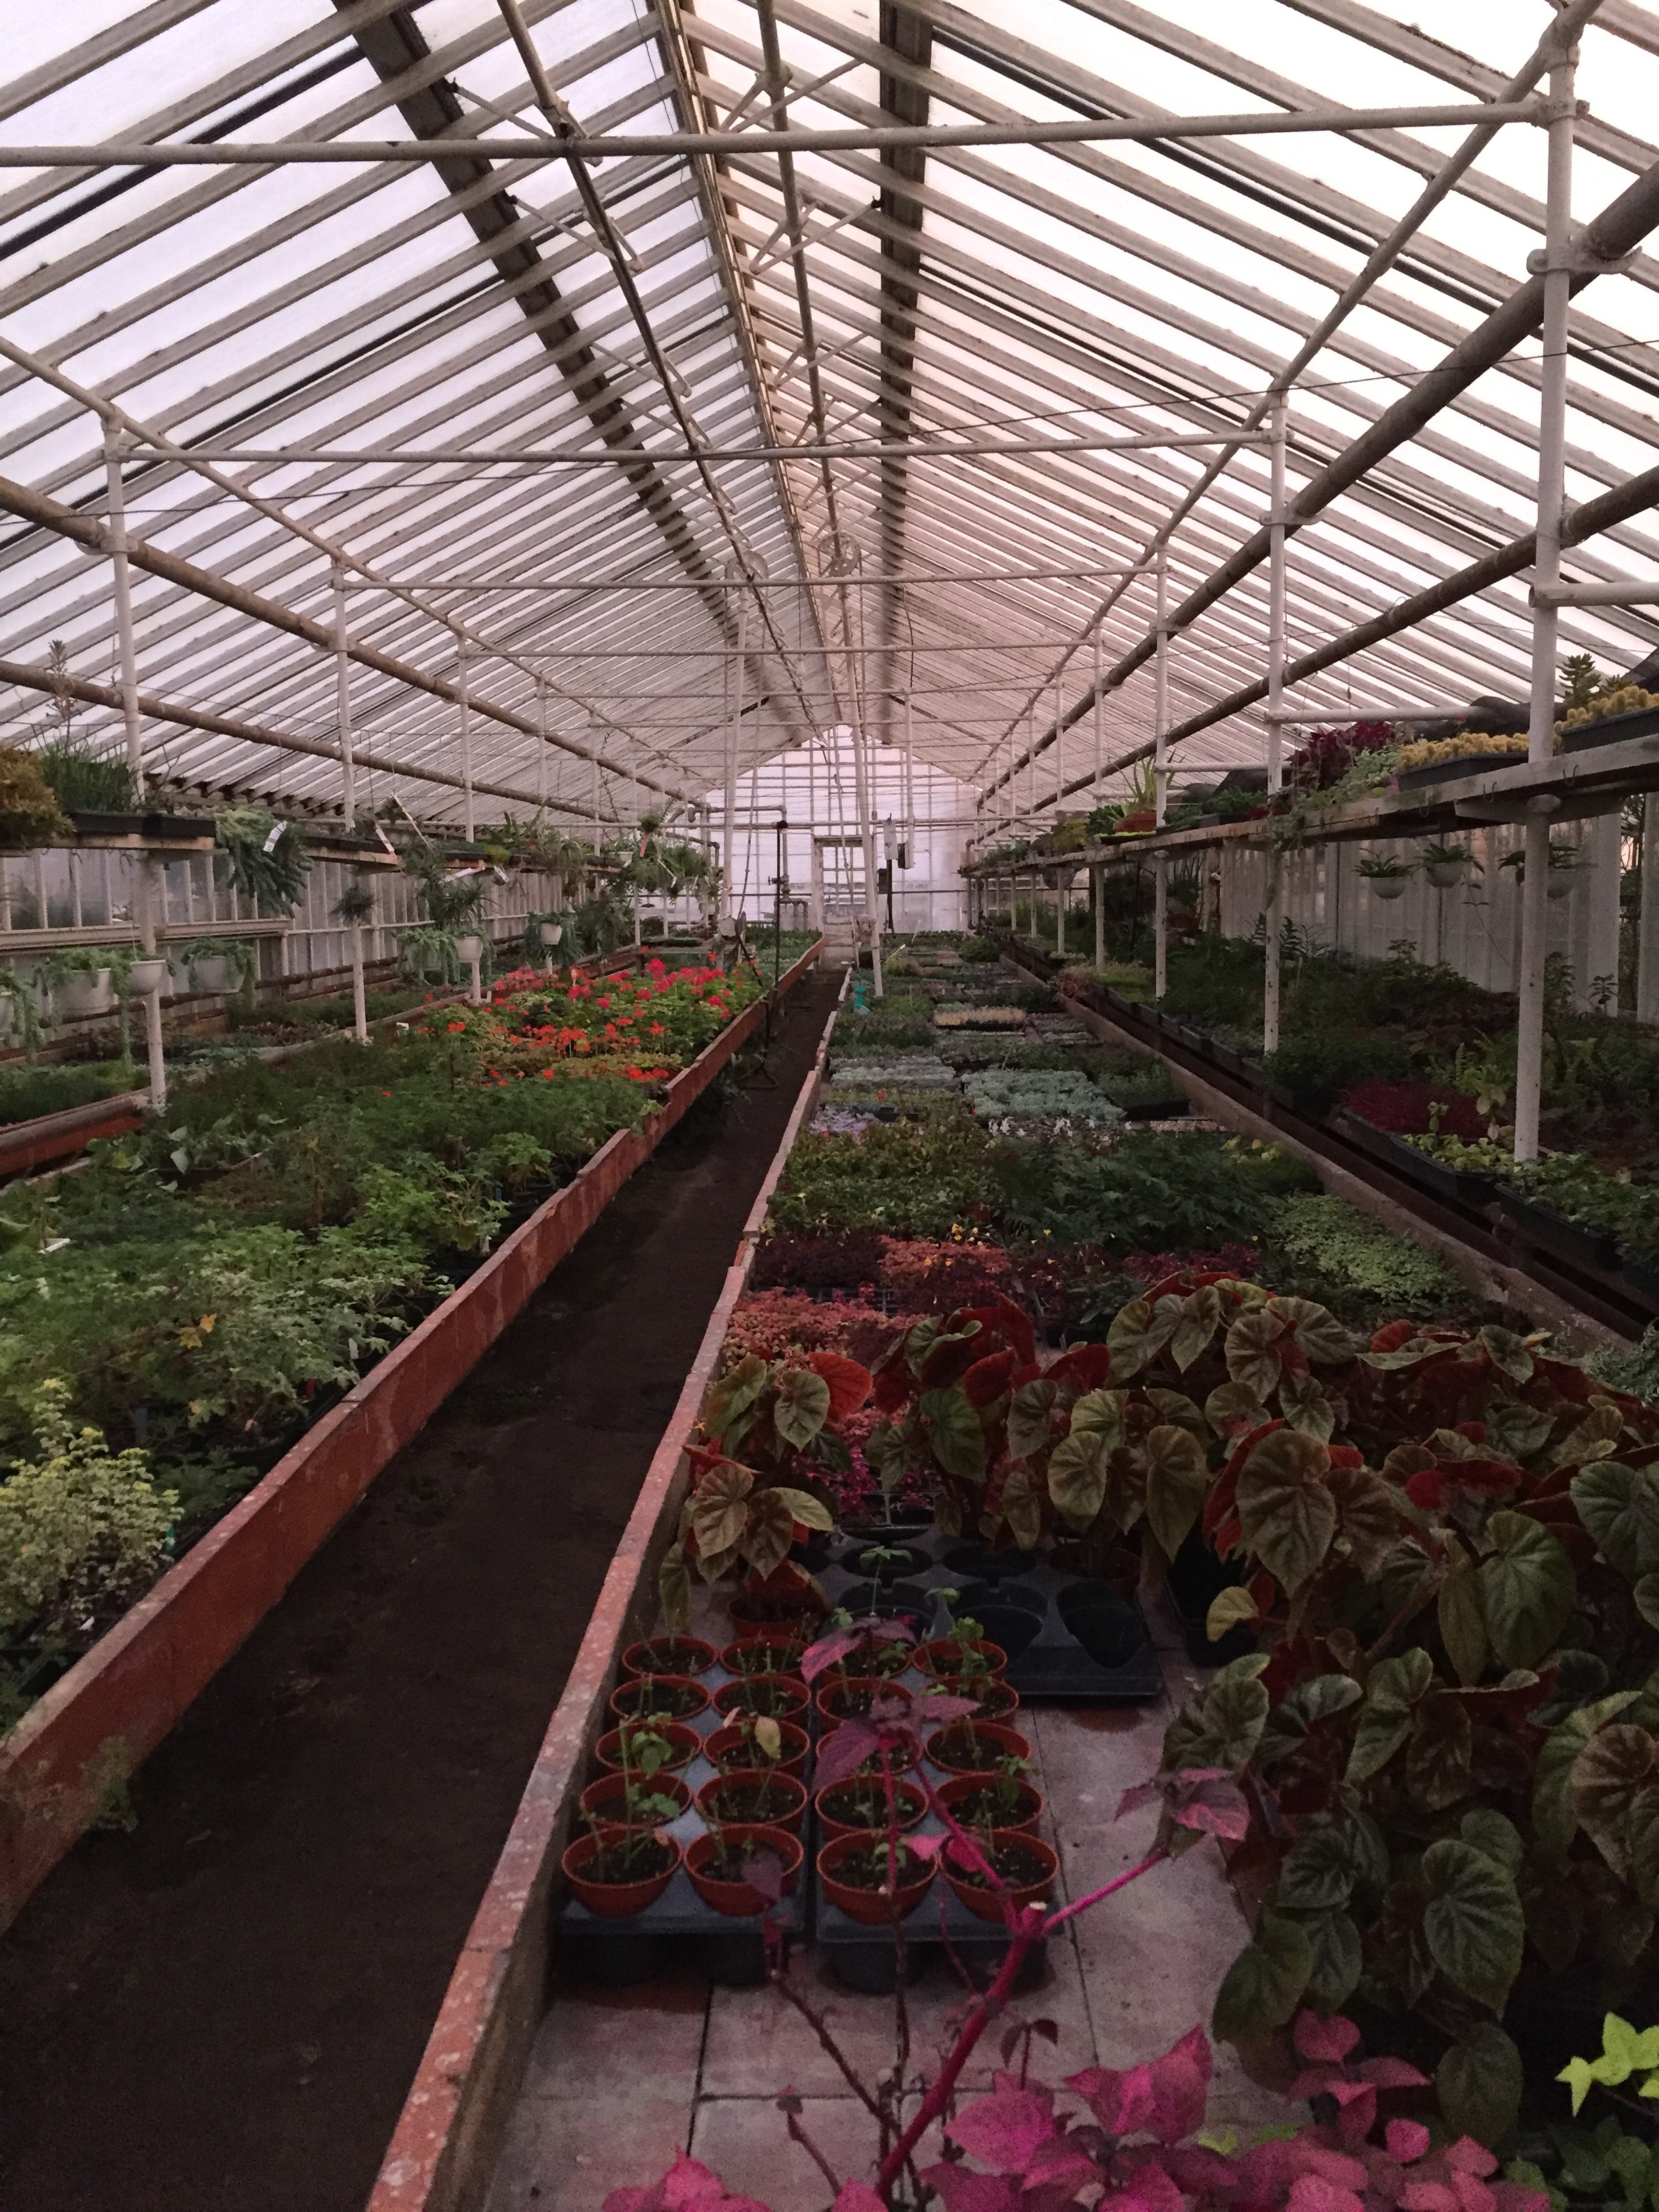 The greenhouse…a little more recently